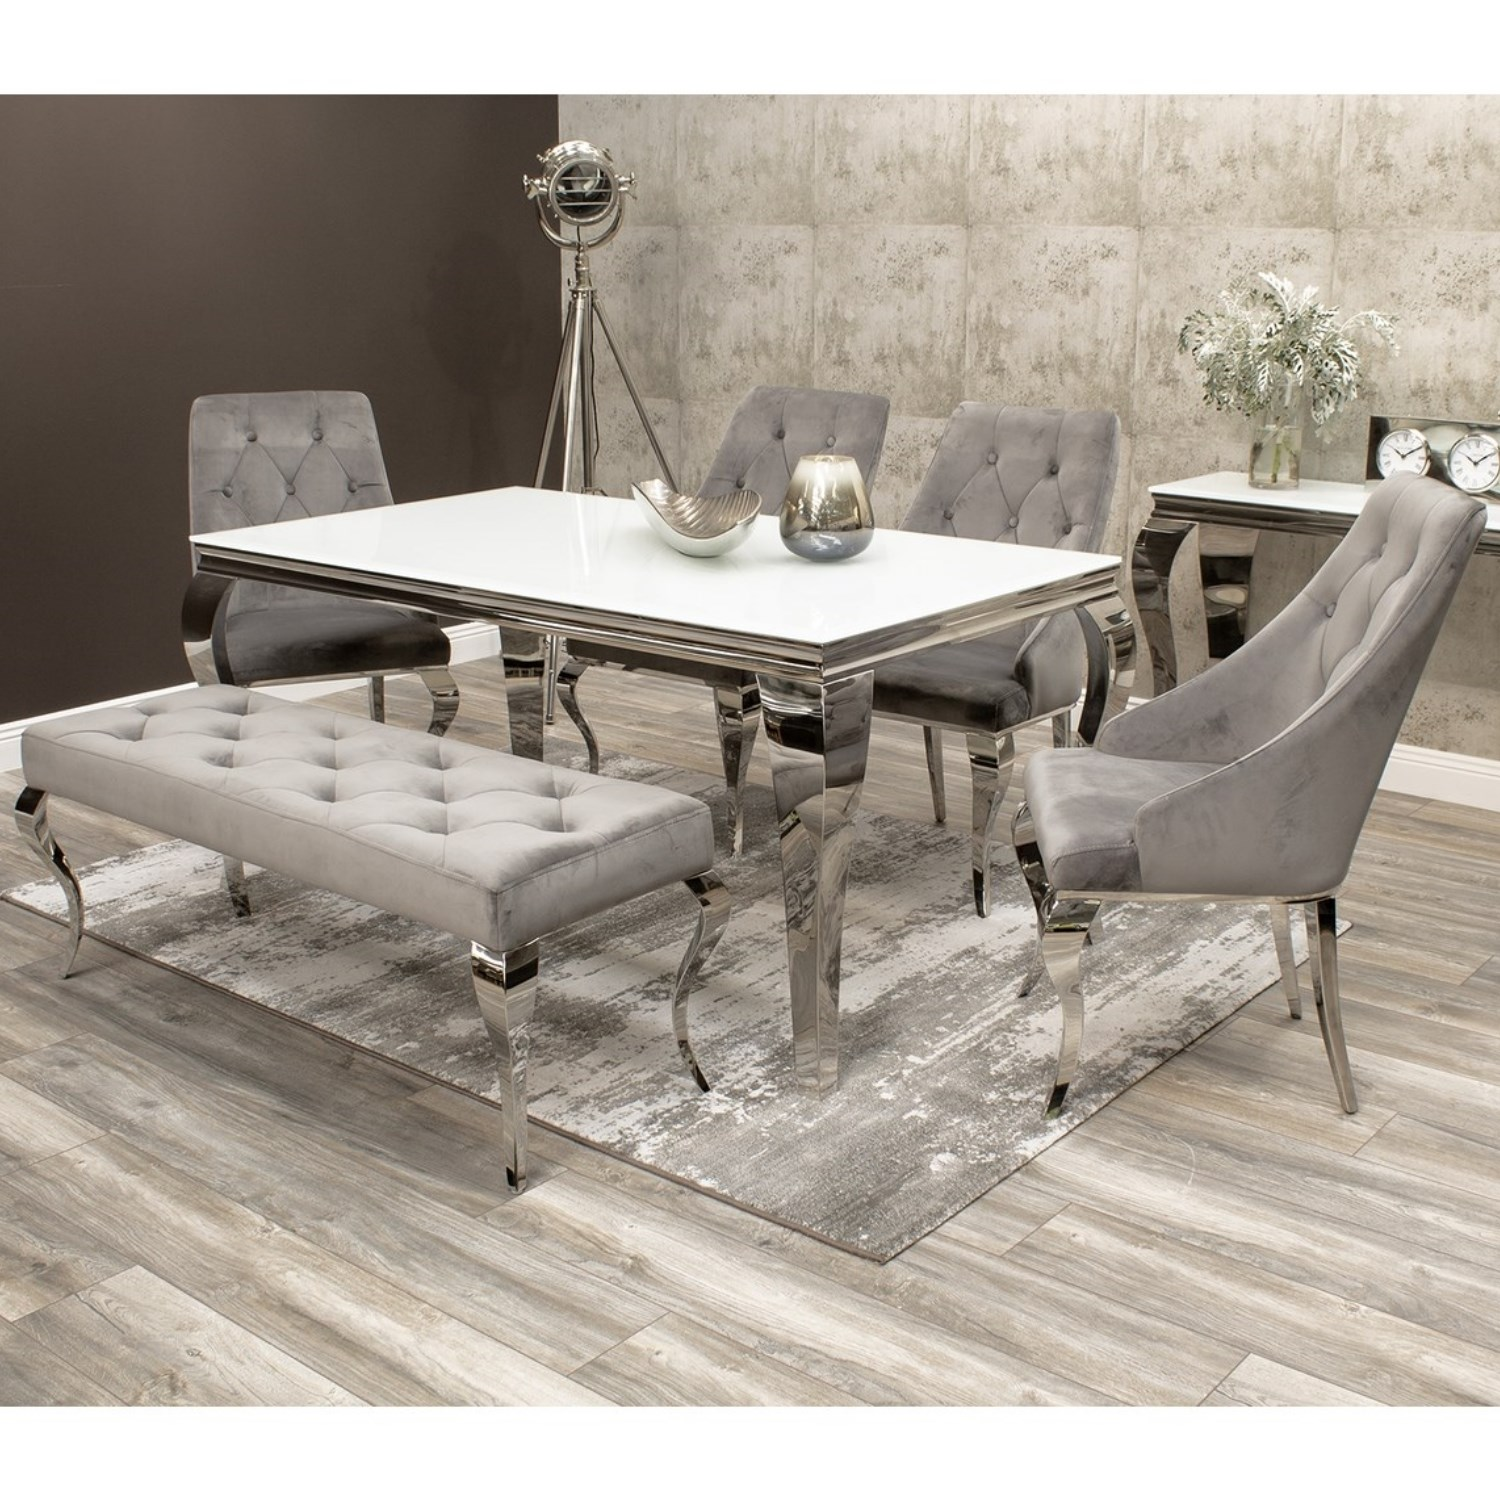 dining table chairs and bench set